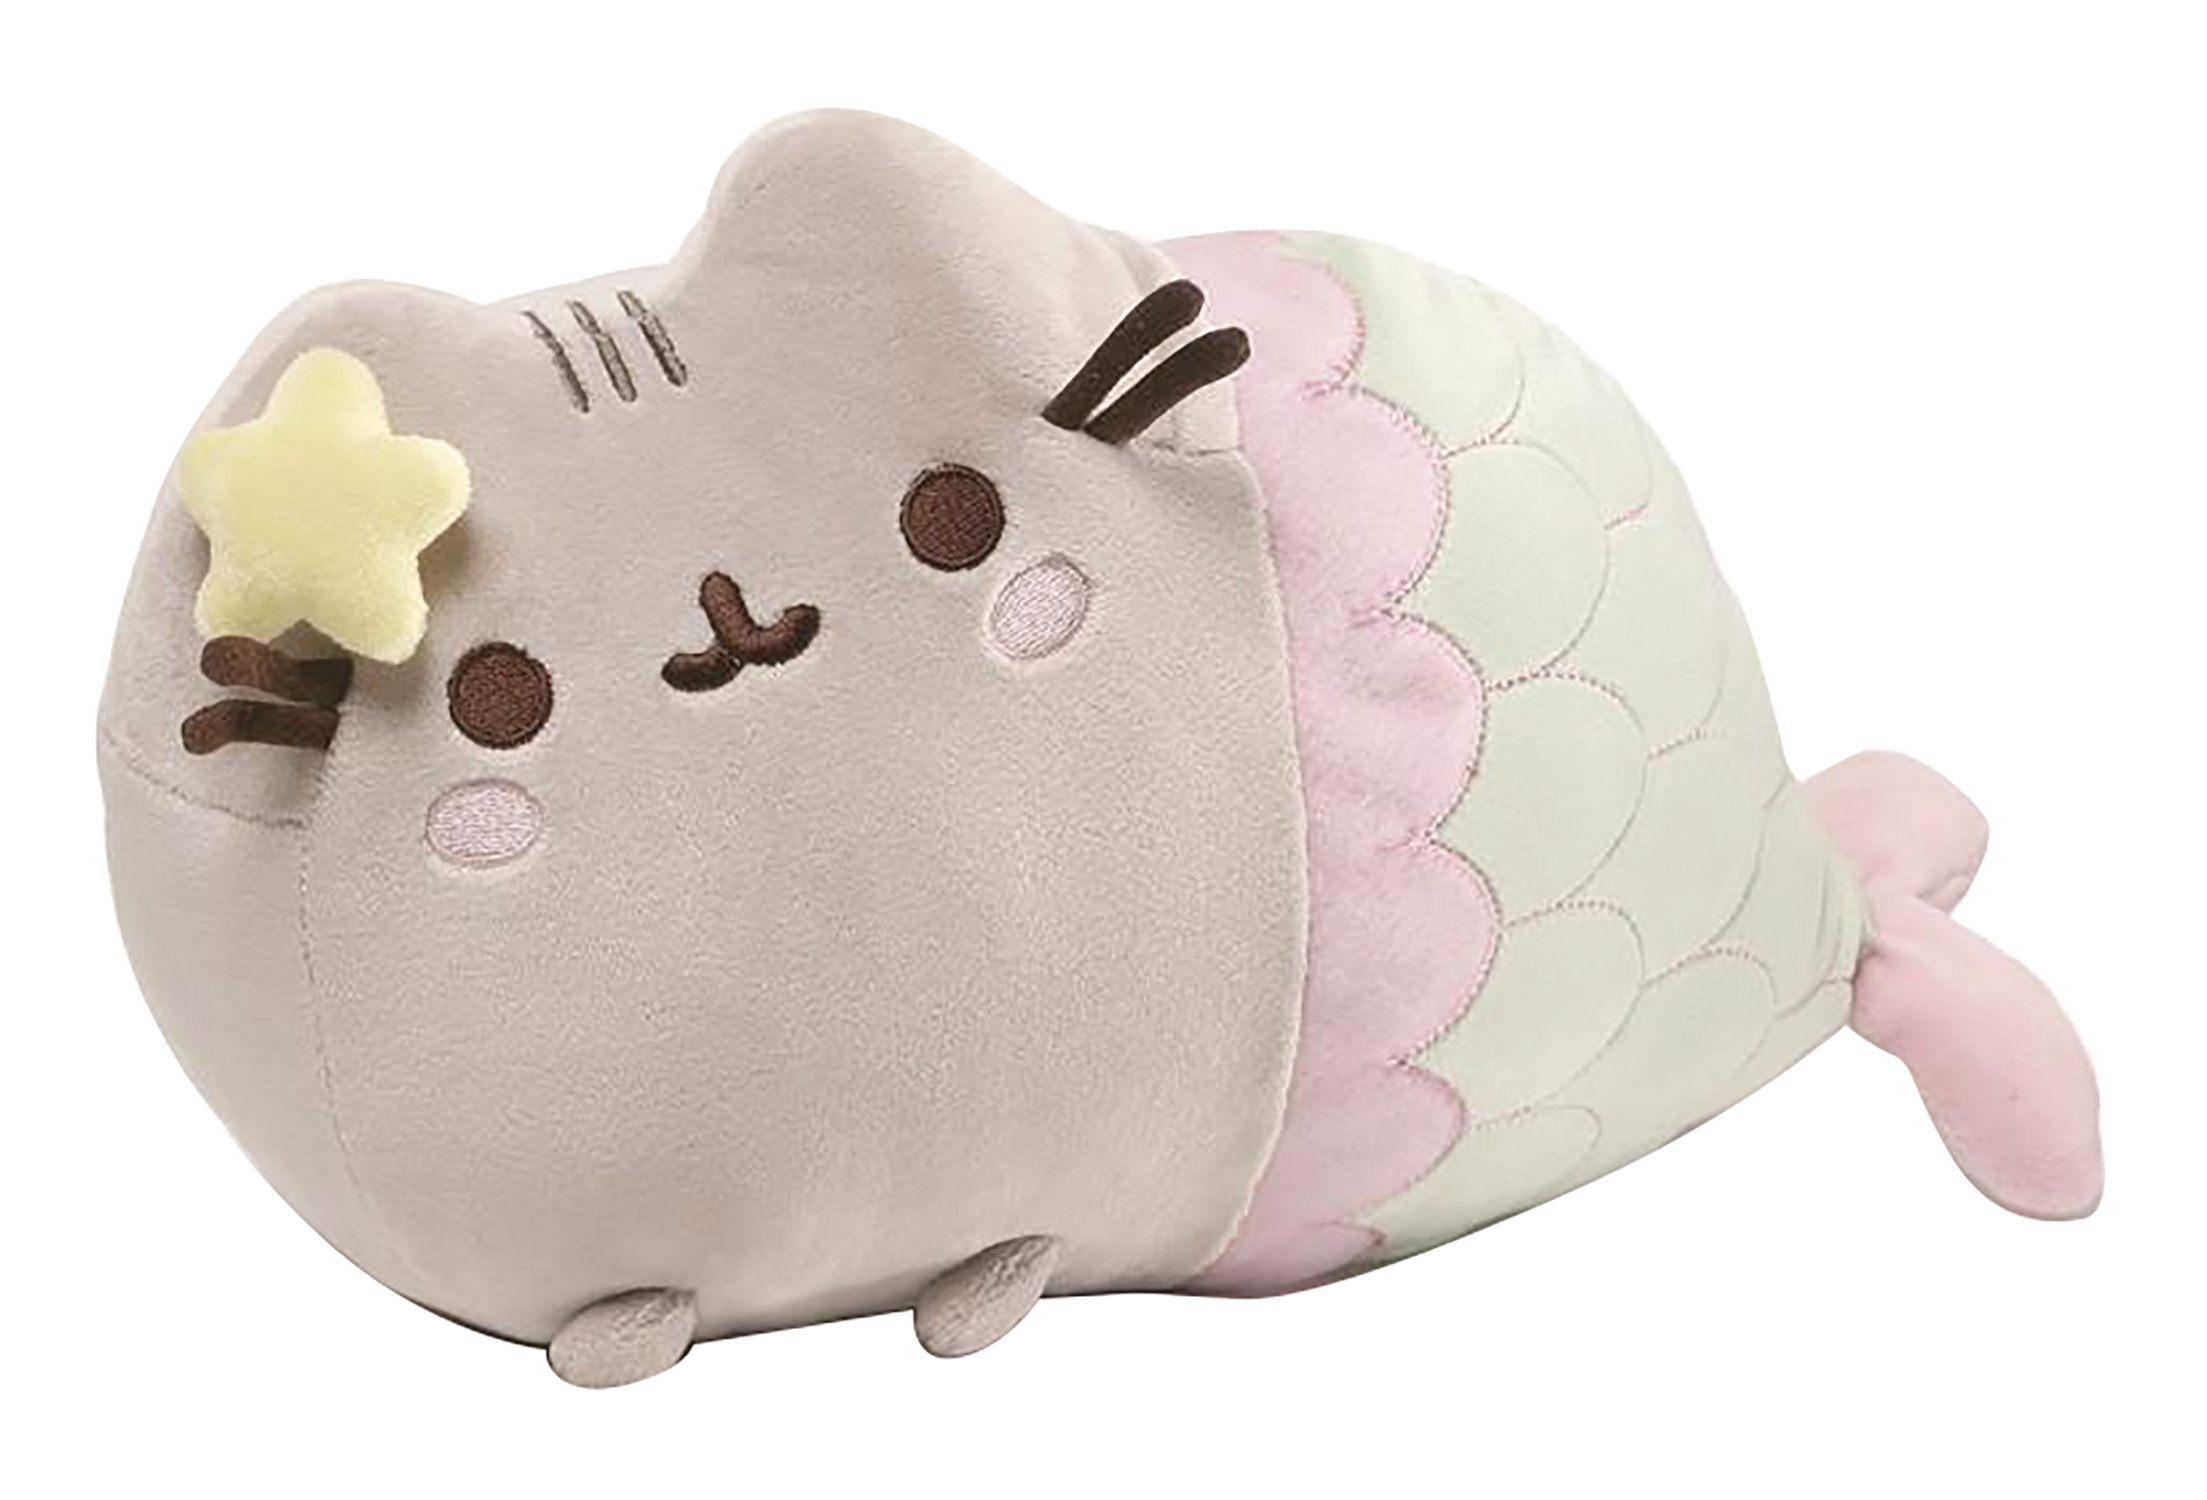 PUSHEEN MERMAID WITH STAR 12 IN PLUSH